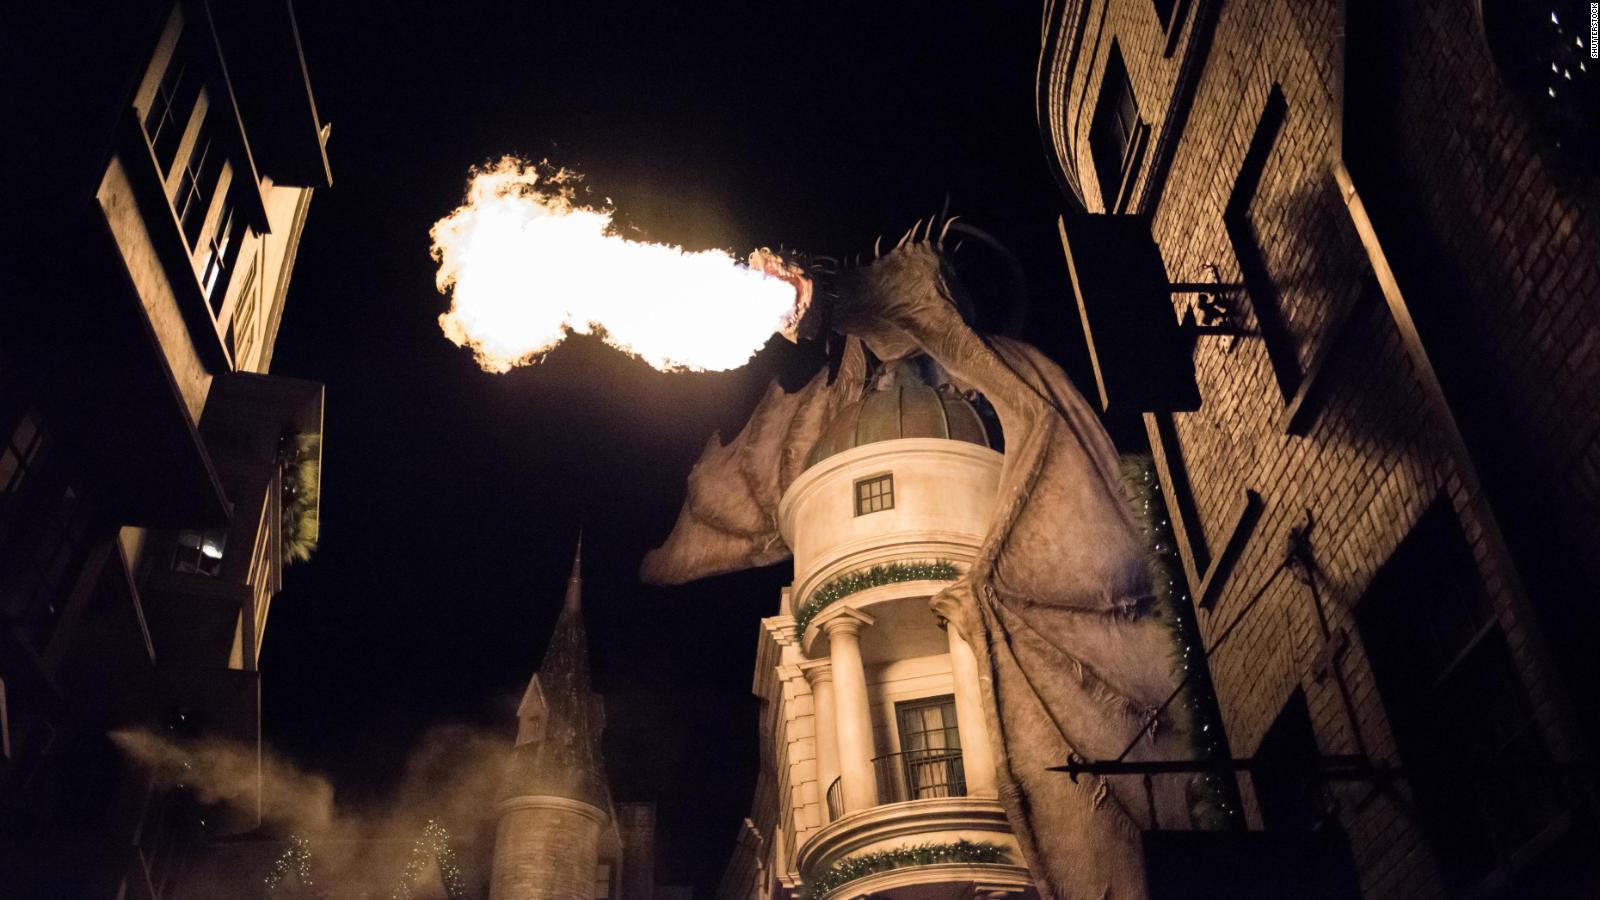 b70e3bf301 Wizarding World of Harry Potter takes on reluctant parent in Orlando   CNN  Travel